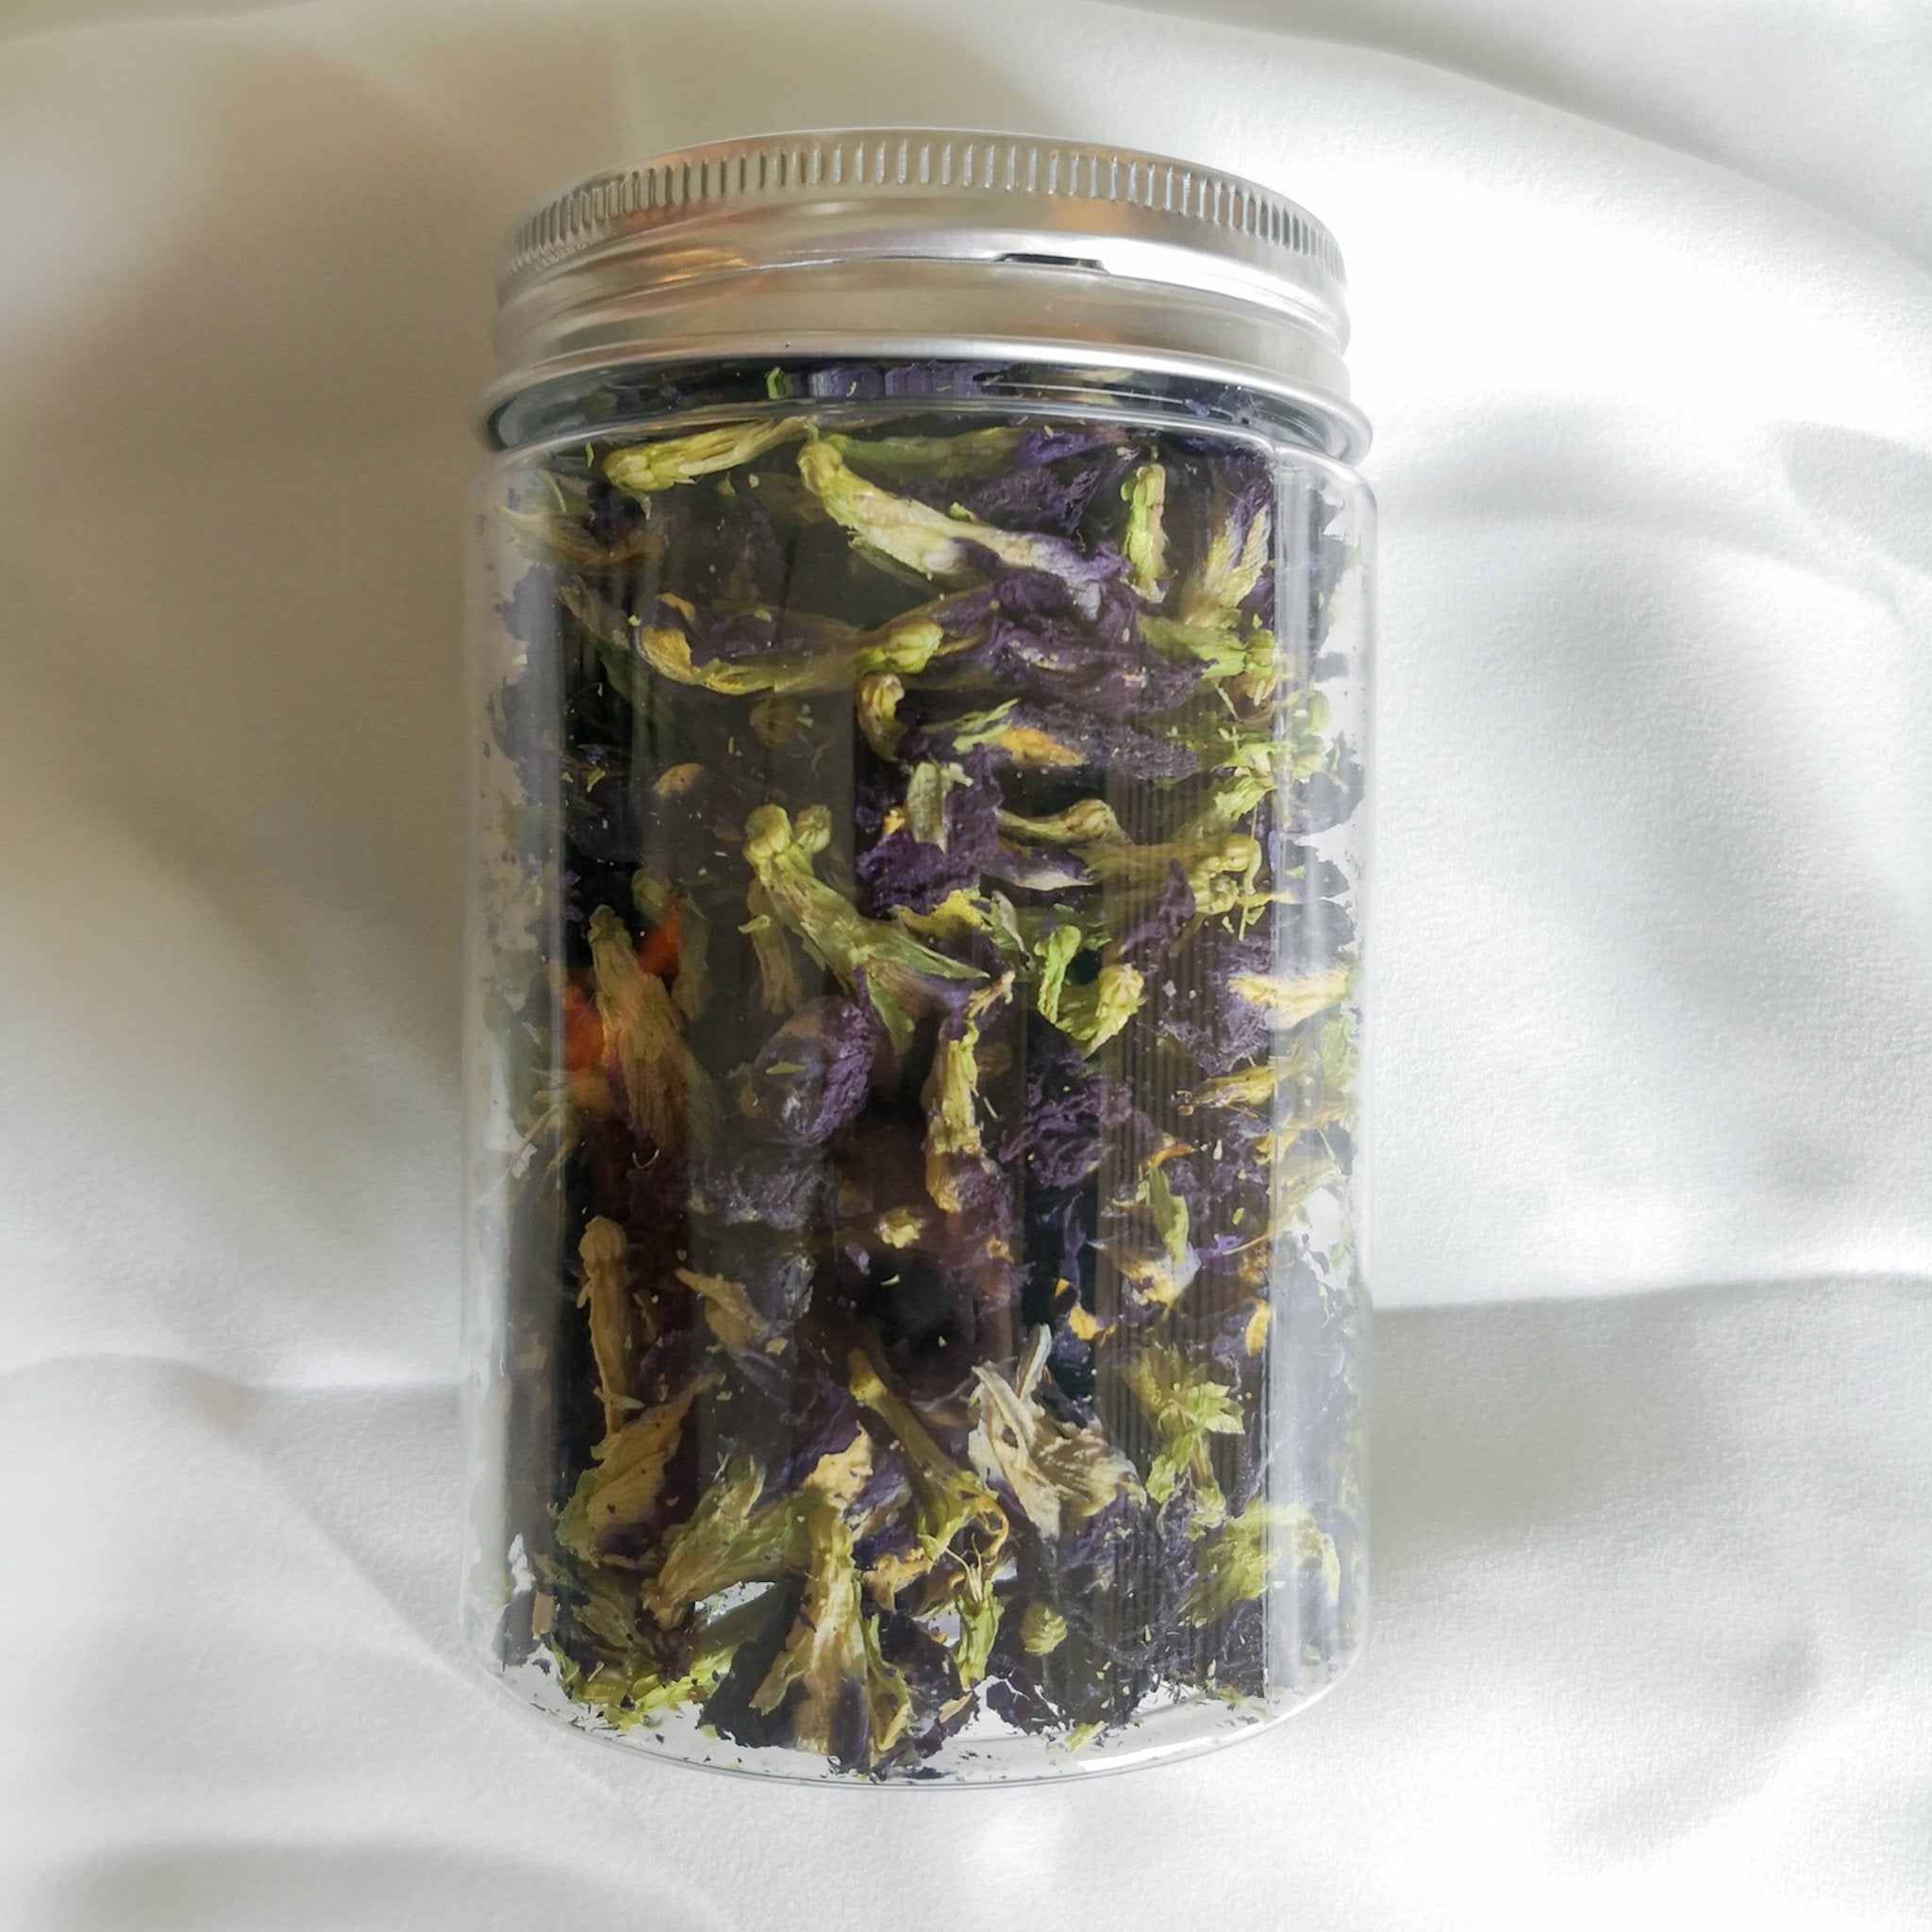 Butterfly Pea Tea 蝶豆花茶 - Anti-Aging 延缓衰老 - Brewiss Tea